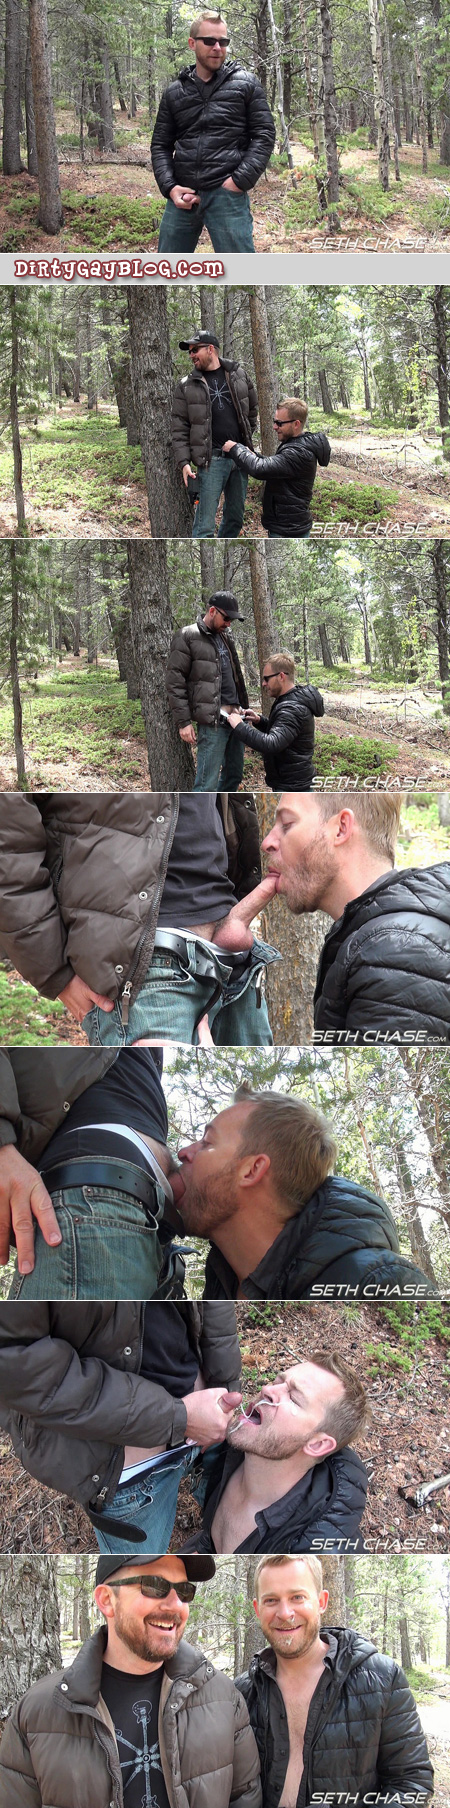 A bearded guy gives another bearded guy a cum facial in the woods.